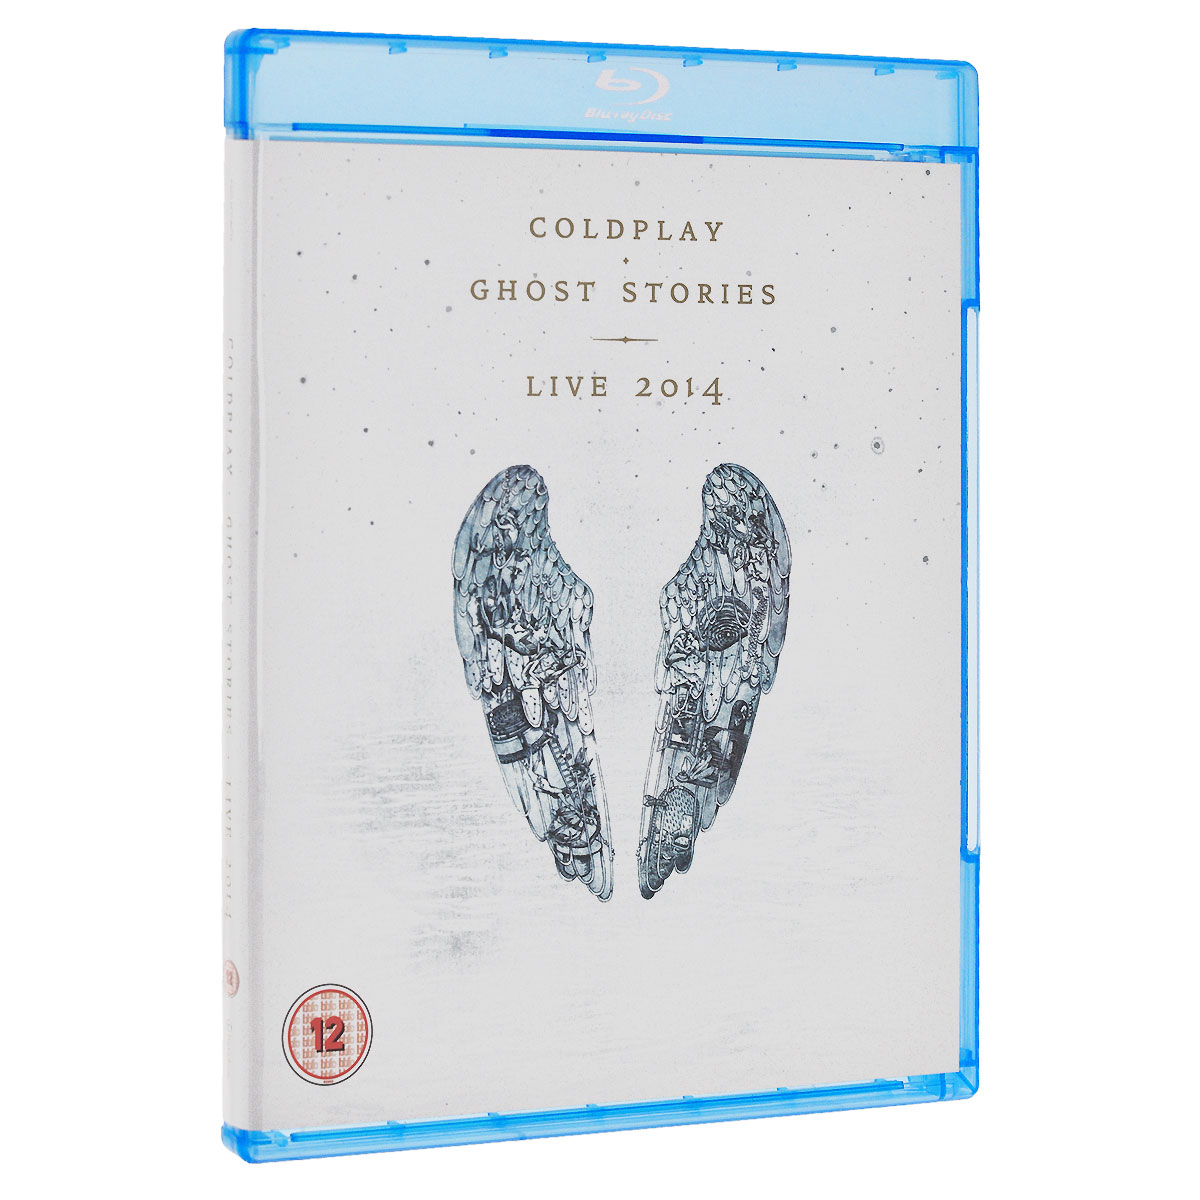 Coldplay. Ghost Stories. Live 2014 (Blu-ray + CD) подвесное кресло besta fiesta кресло aruba каркас майя металл